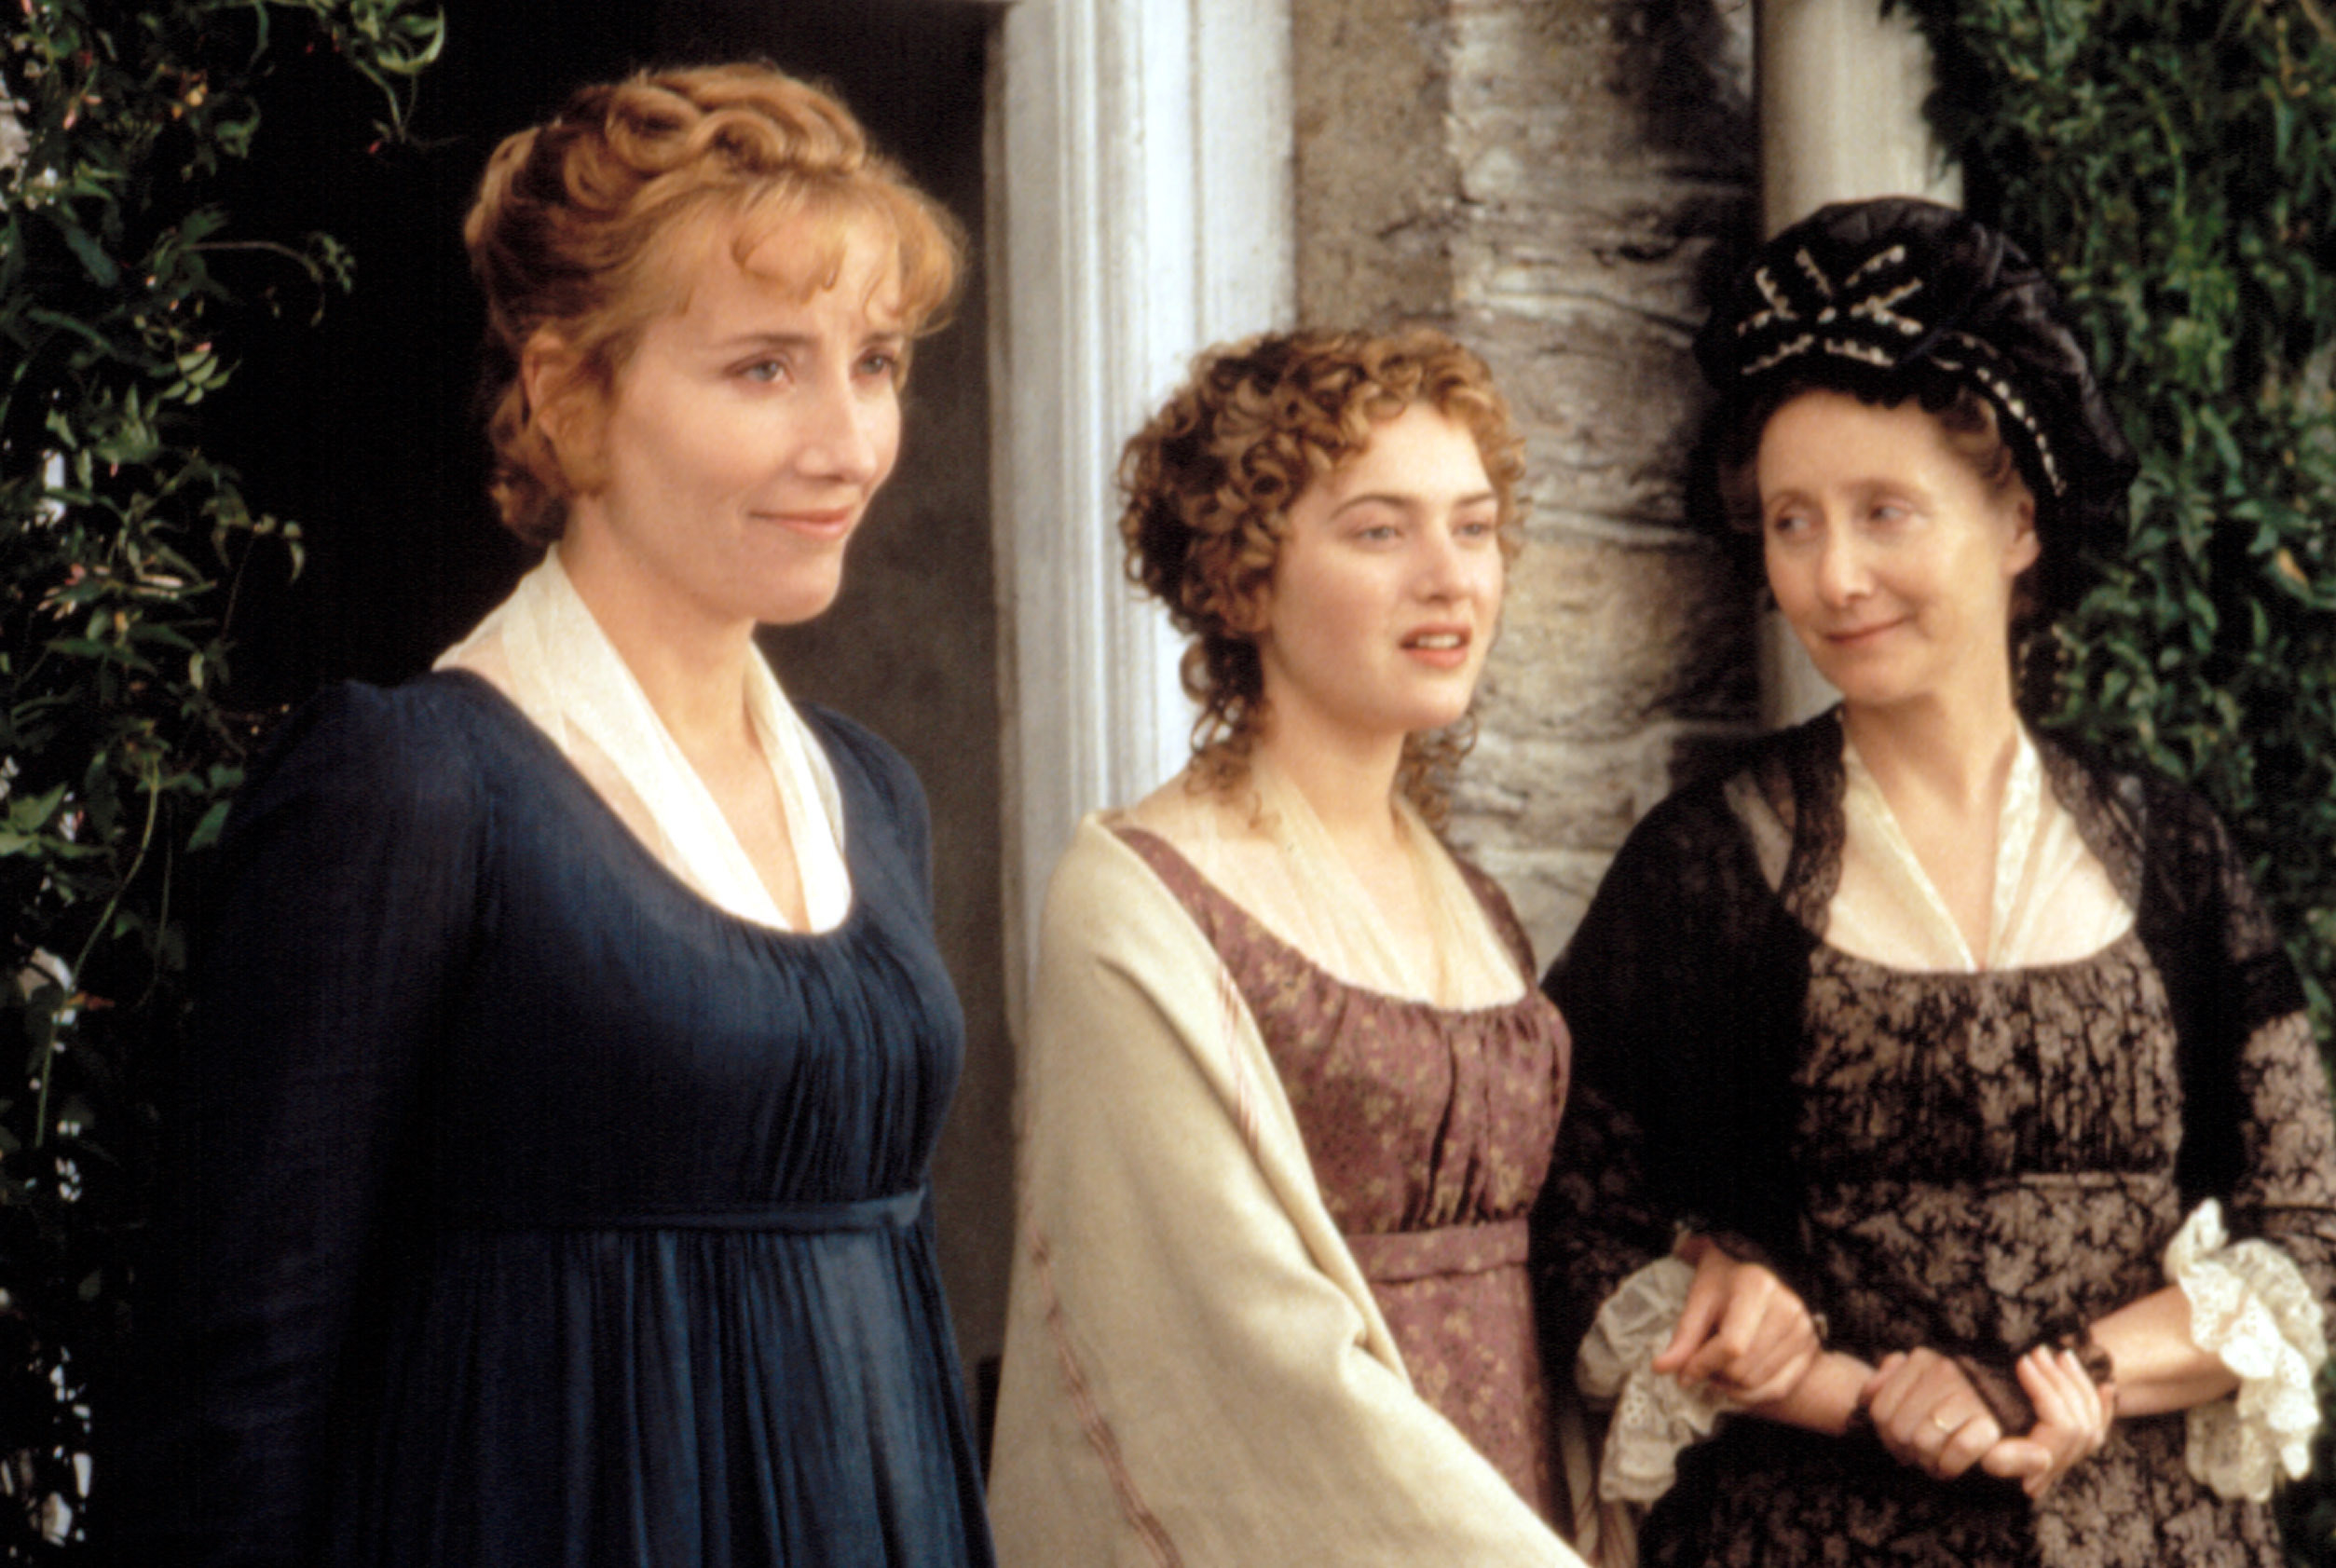 Emma Thompson, Kate Winslet, and Gemma Jones stand outside a house in regency clothes